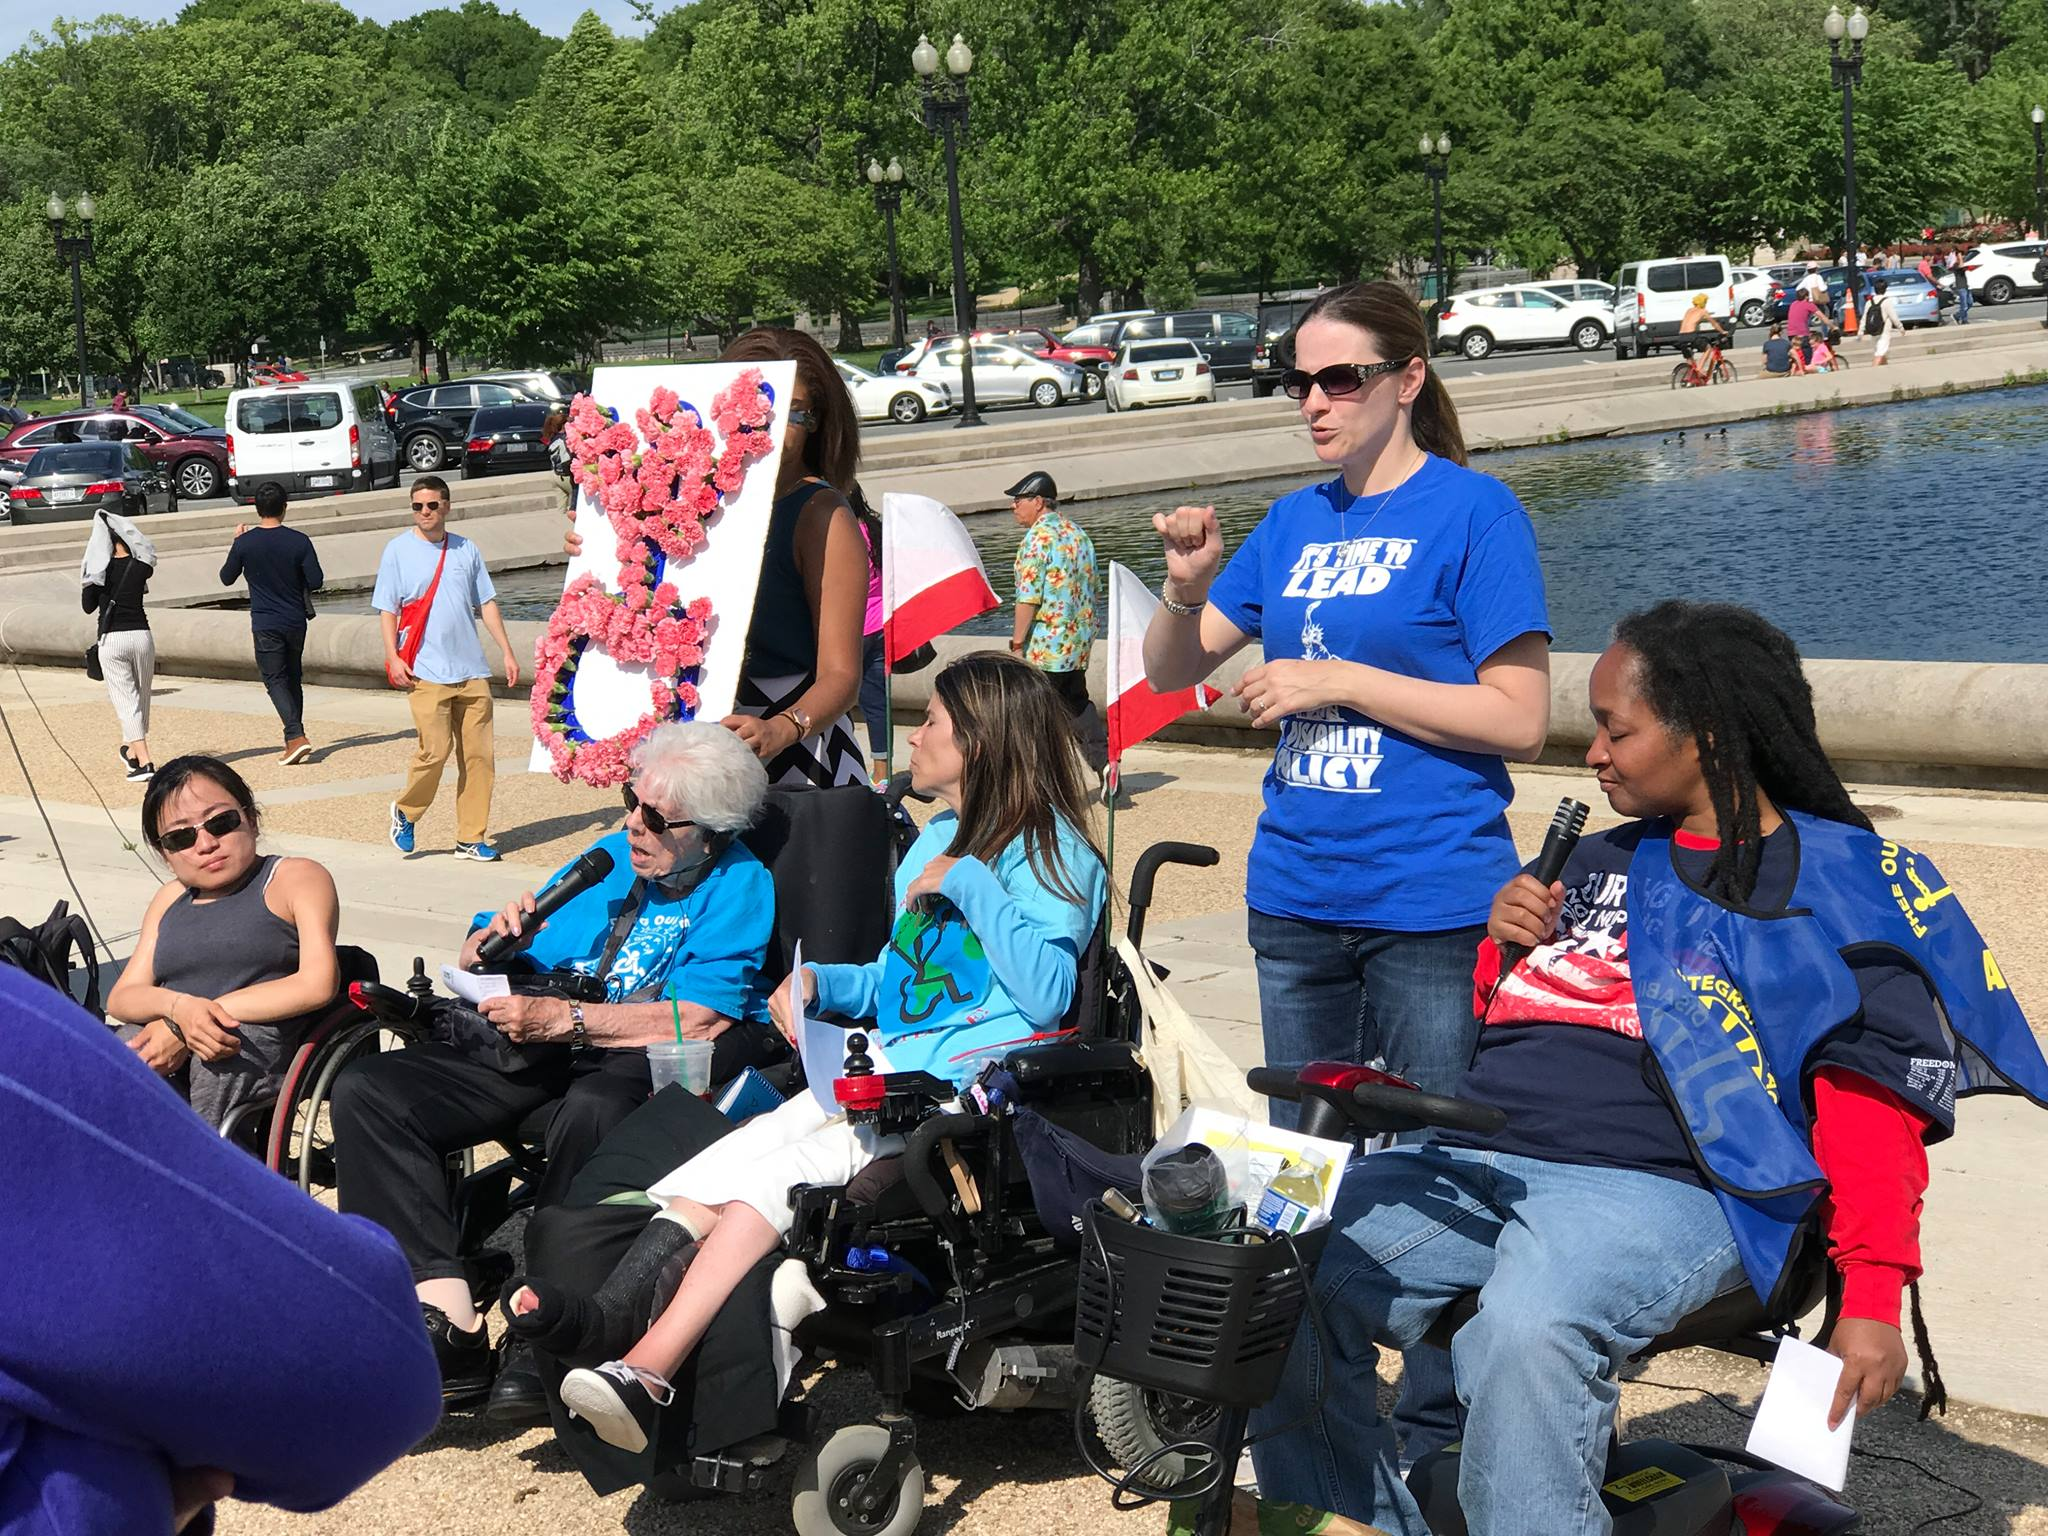 DRAC members are gathered outside the Reflection Pool in Washington DC